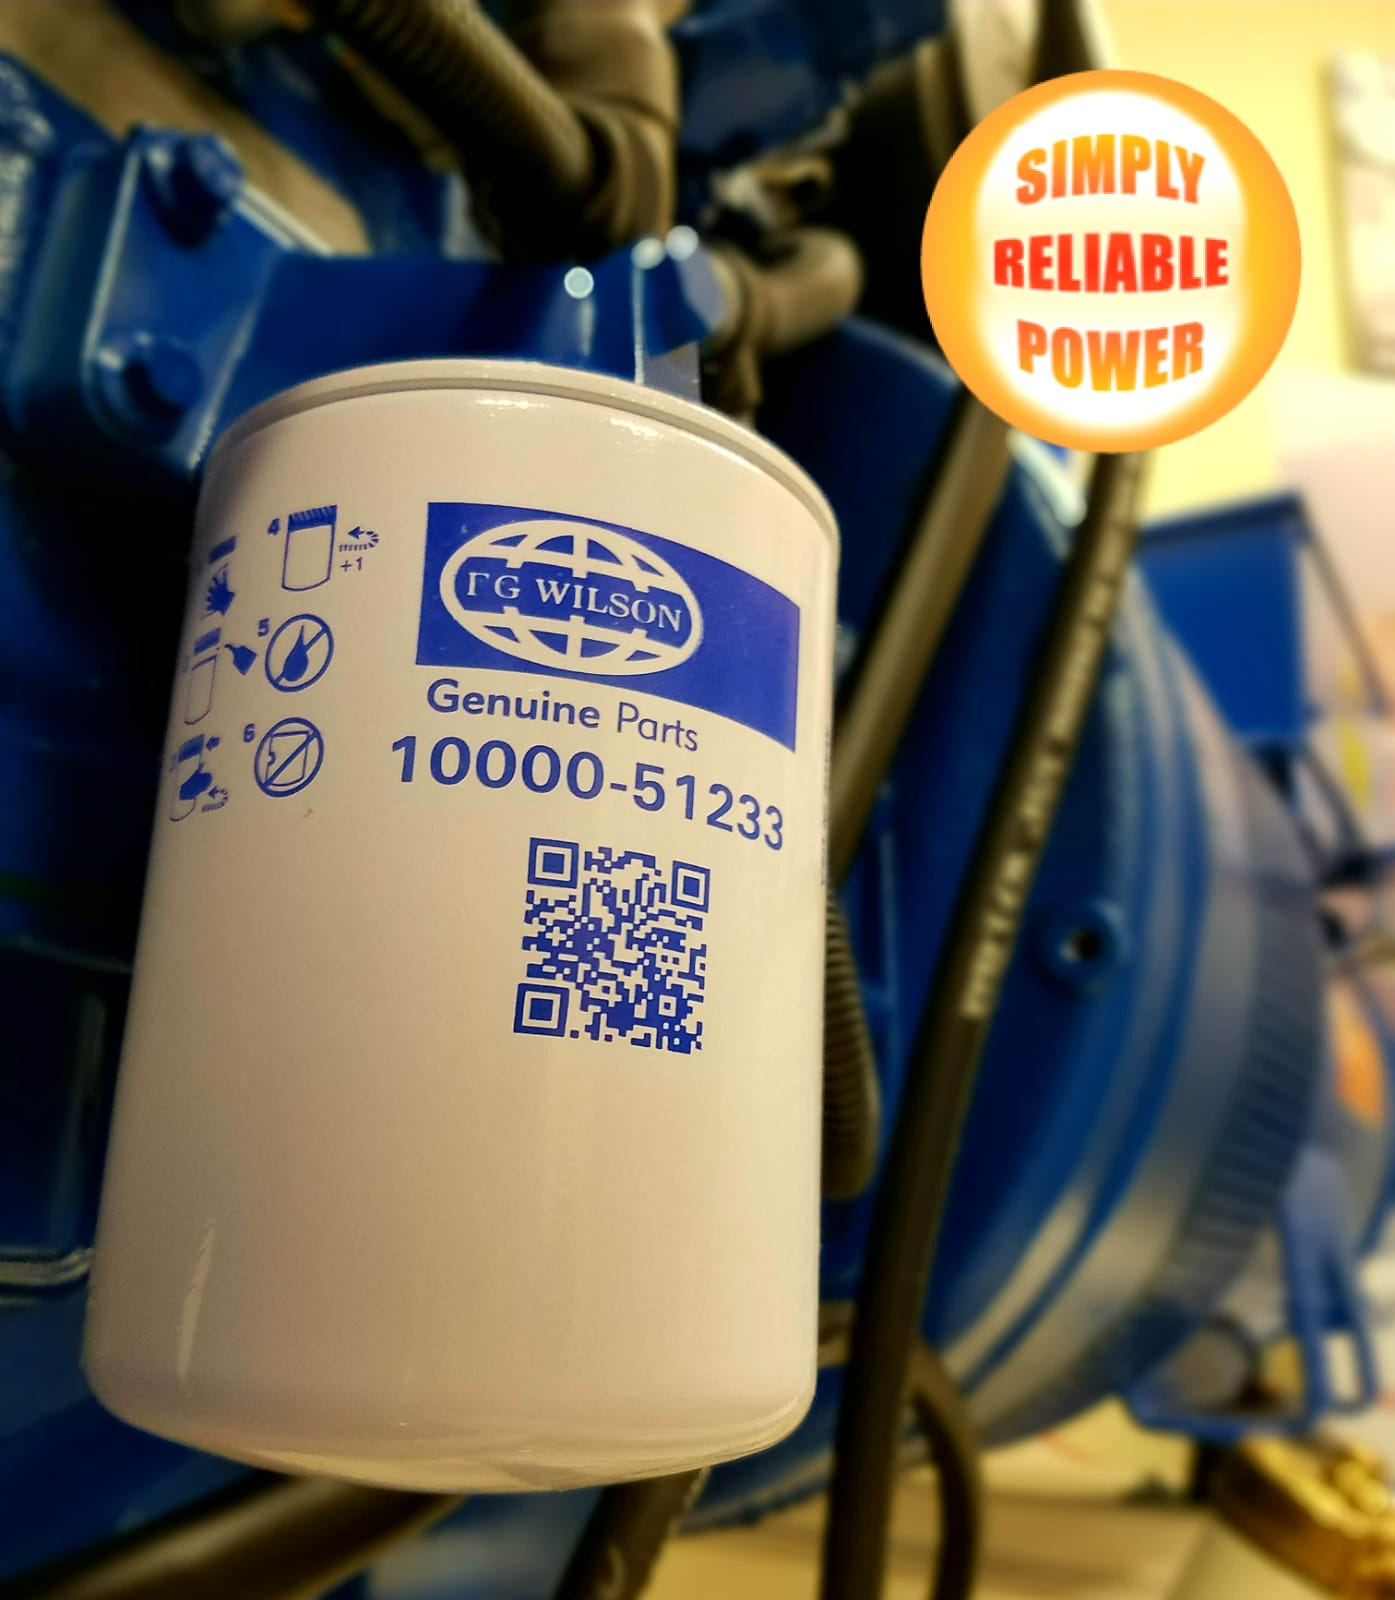 FG Wilson generators Filters (Genuine Parts) available for The Bahamas